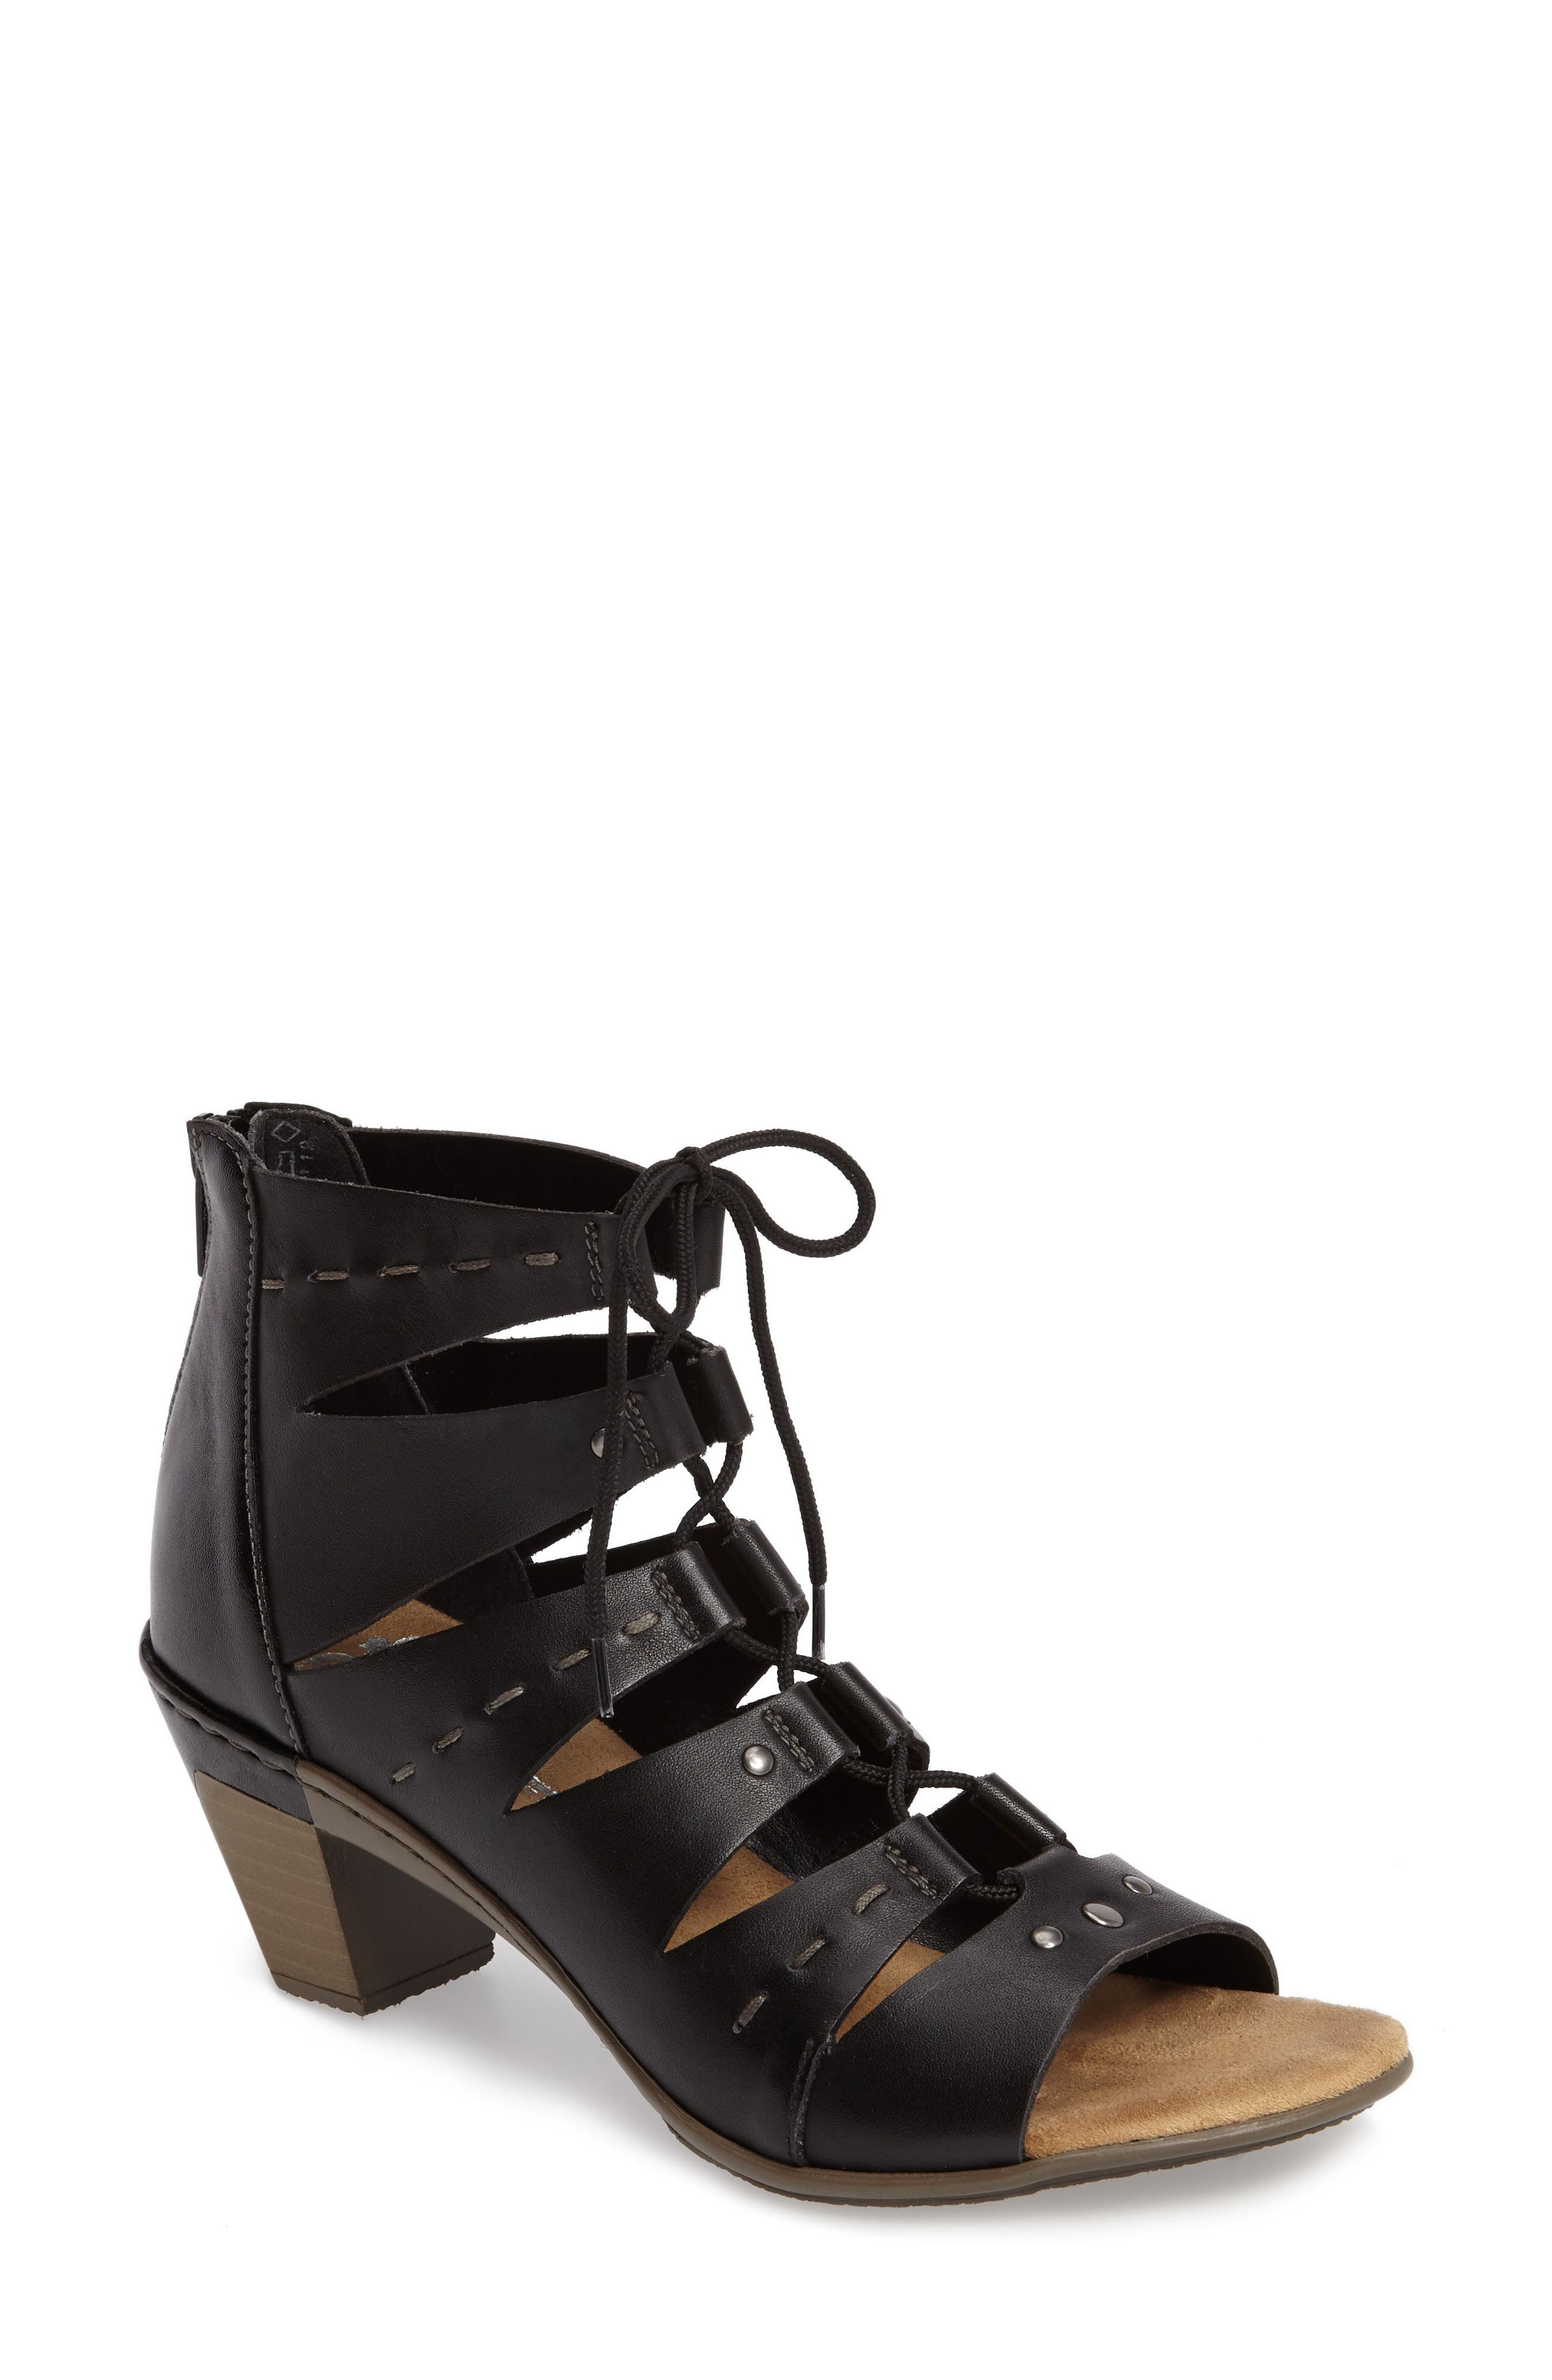 Aileen 99 Ghillie Cage Sandal,                             Main thumbnail 1, color,                             001